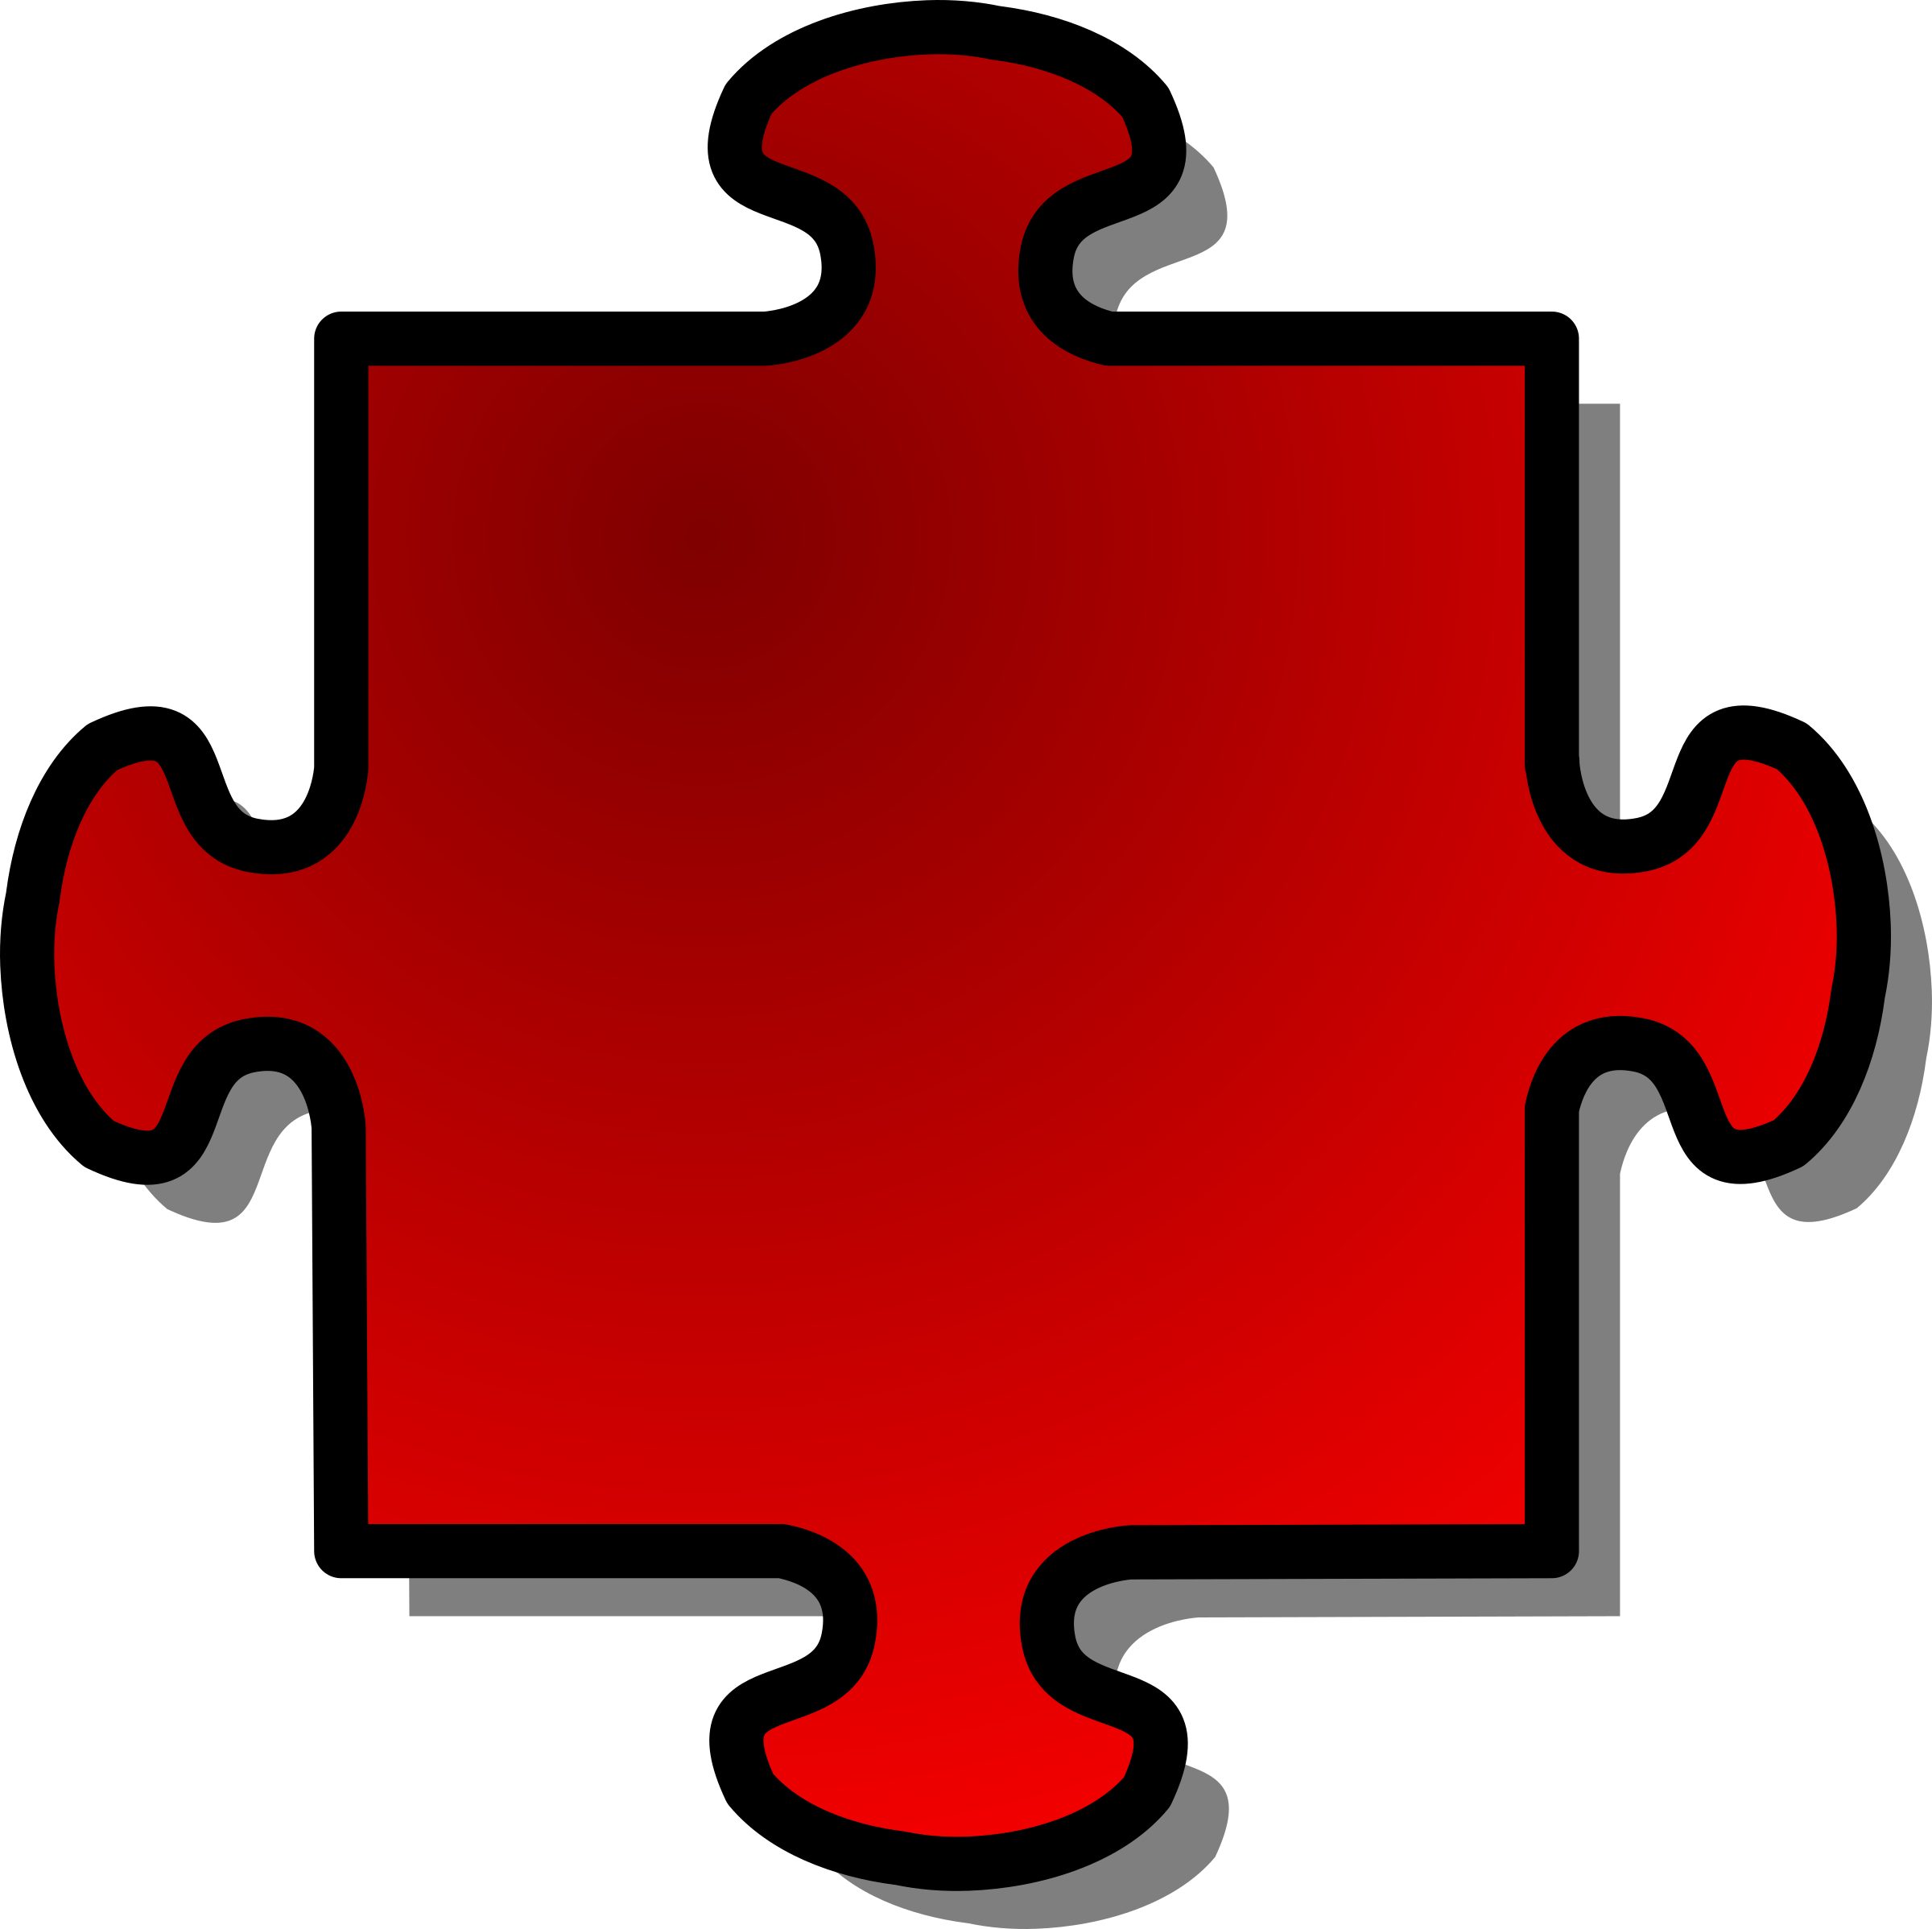 Red Jigsaw piece 04 by nicubunu